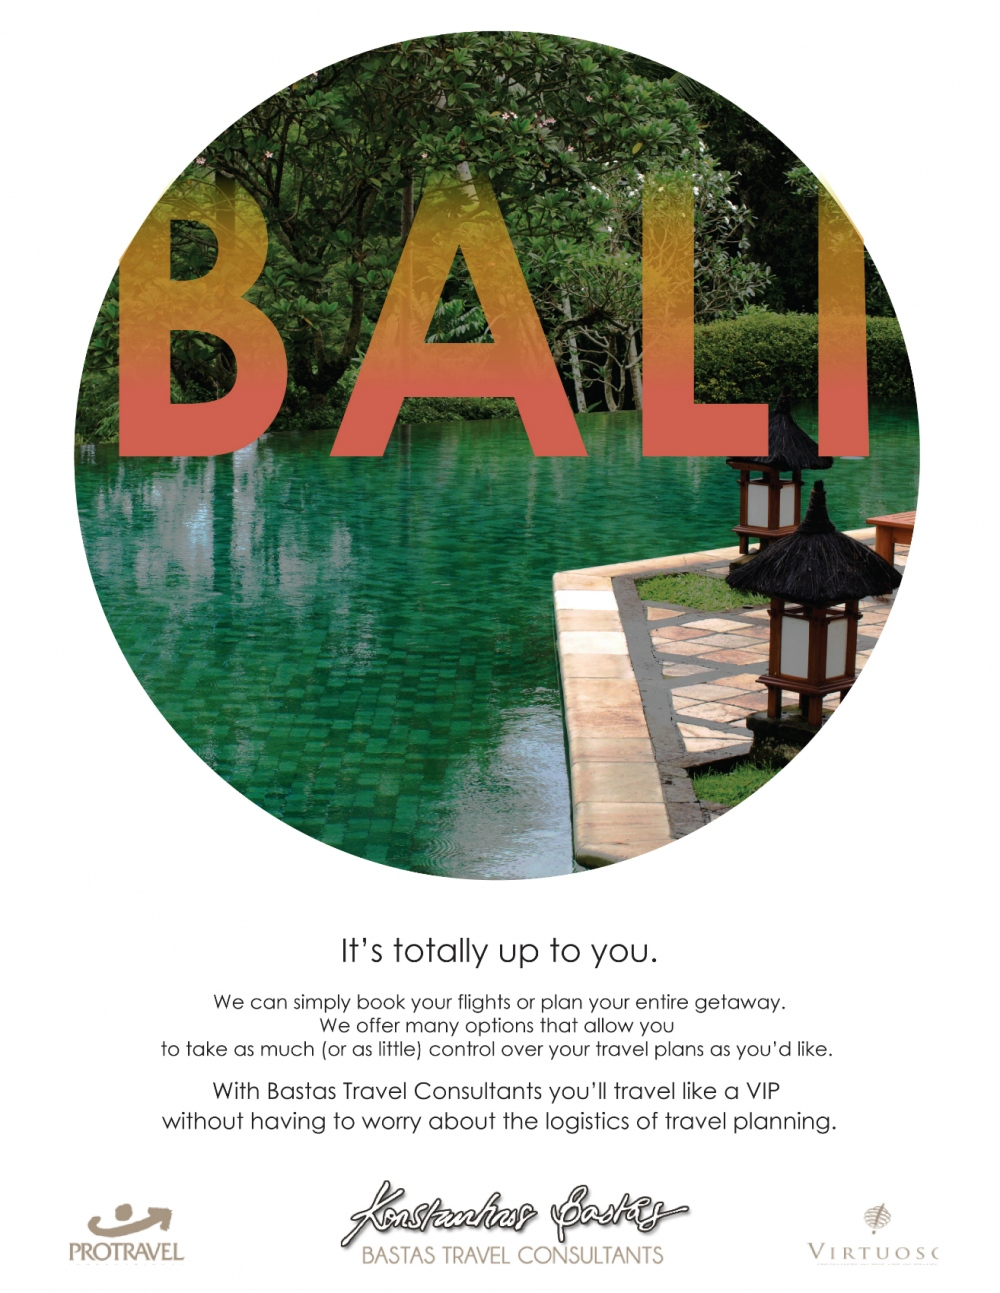 Natallie Rainer Graphic Design Portfolio - Ad for Bali, India